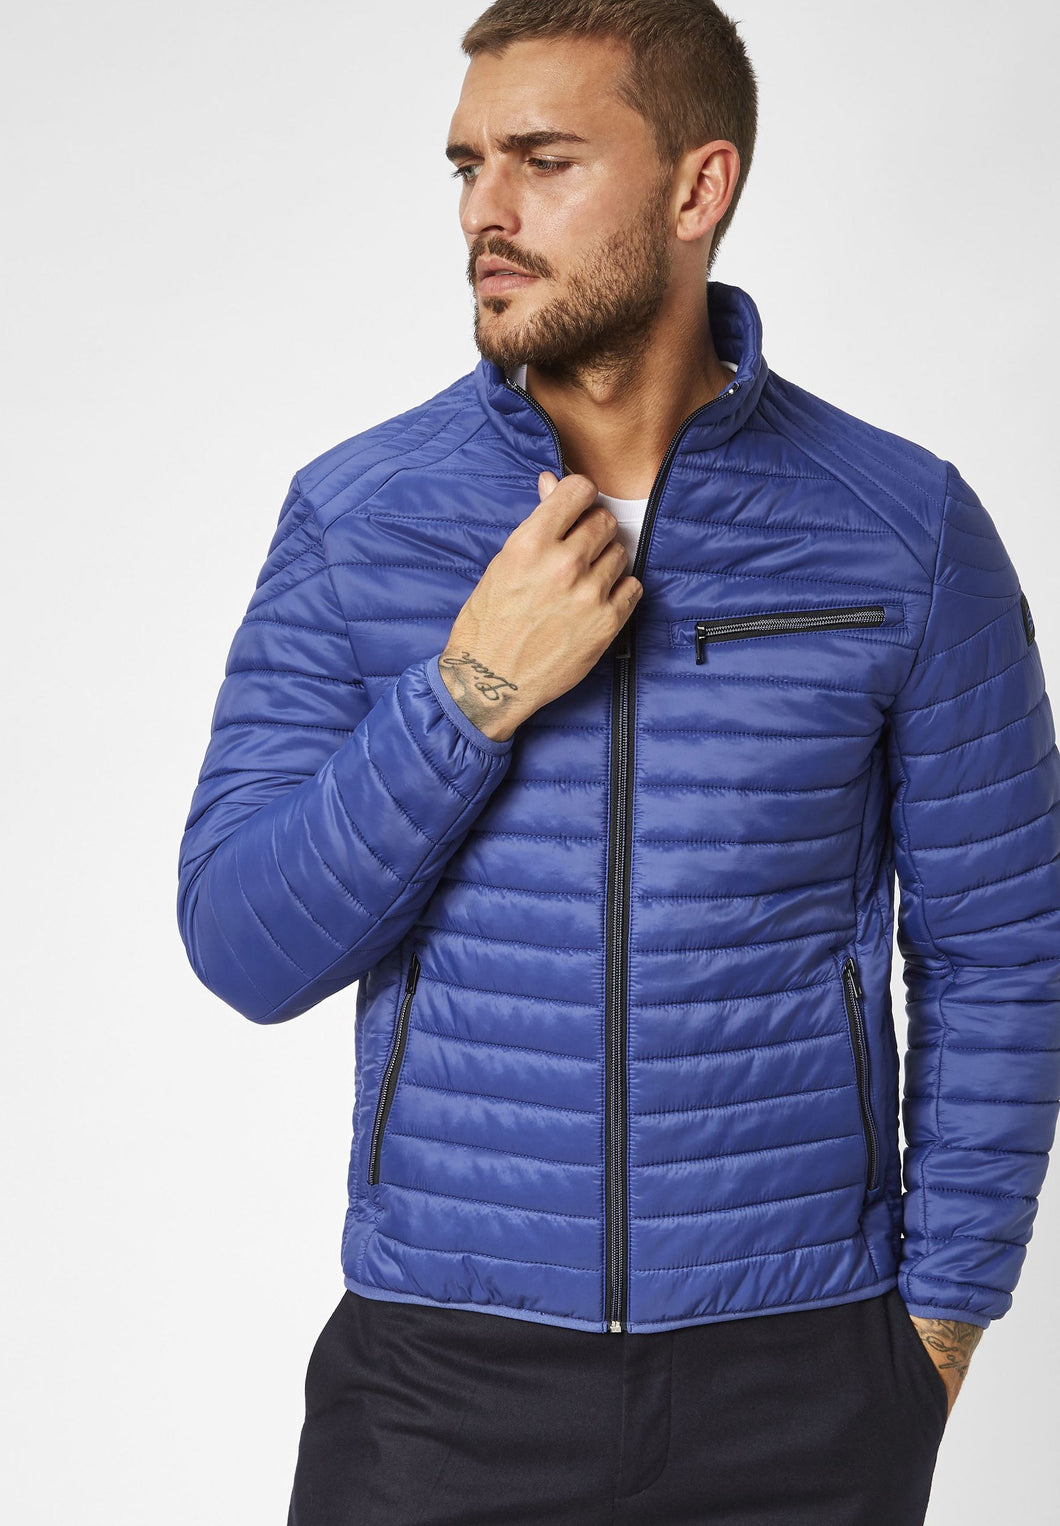 S4 Lightweight Blue Quilted Jacket for Outerwear at StylishGuy Menswear